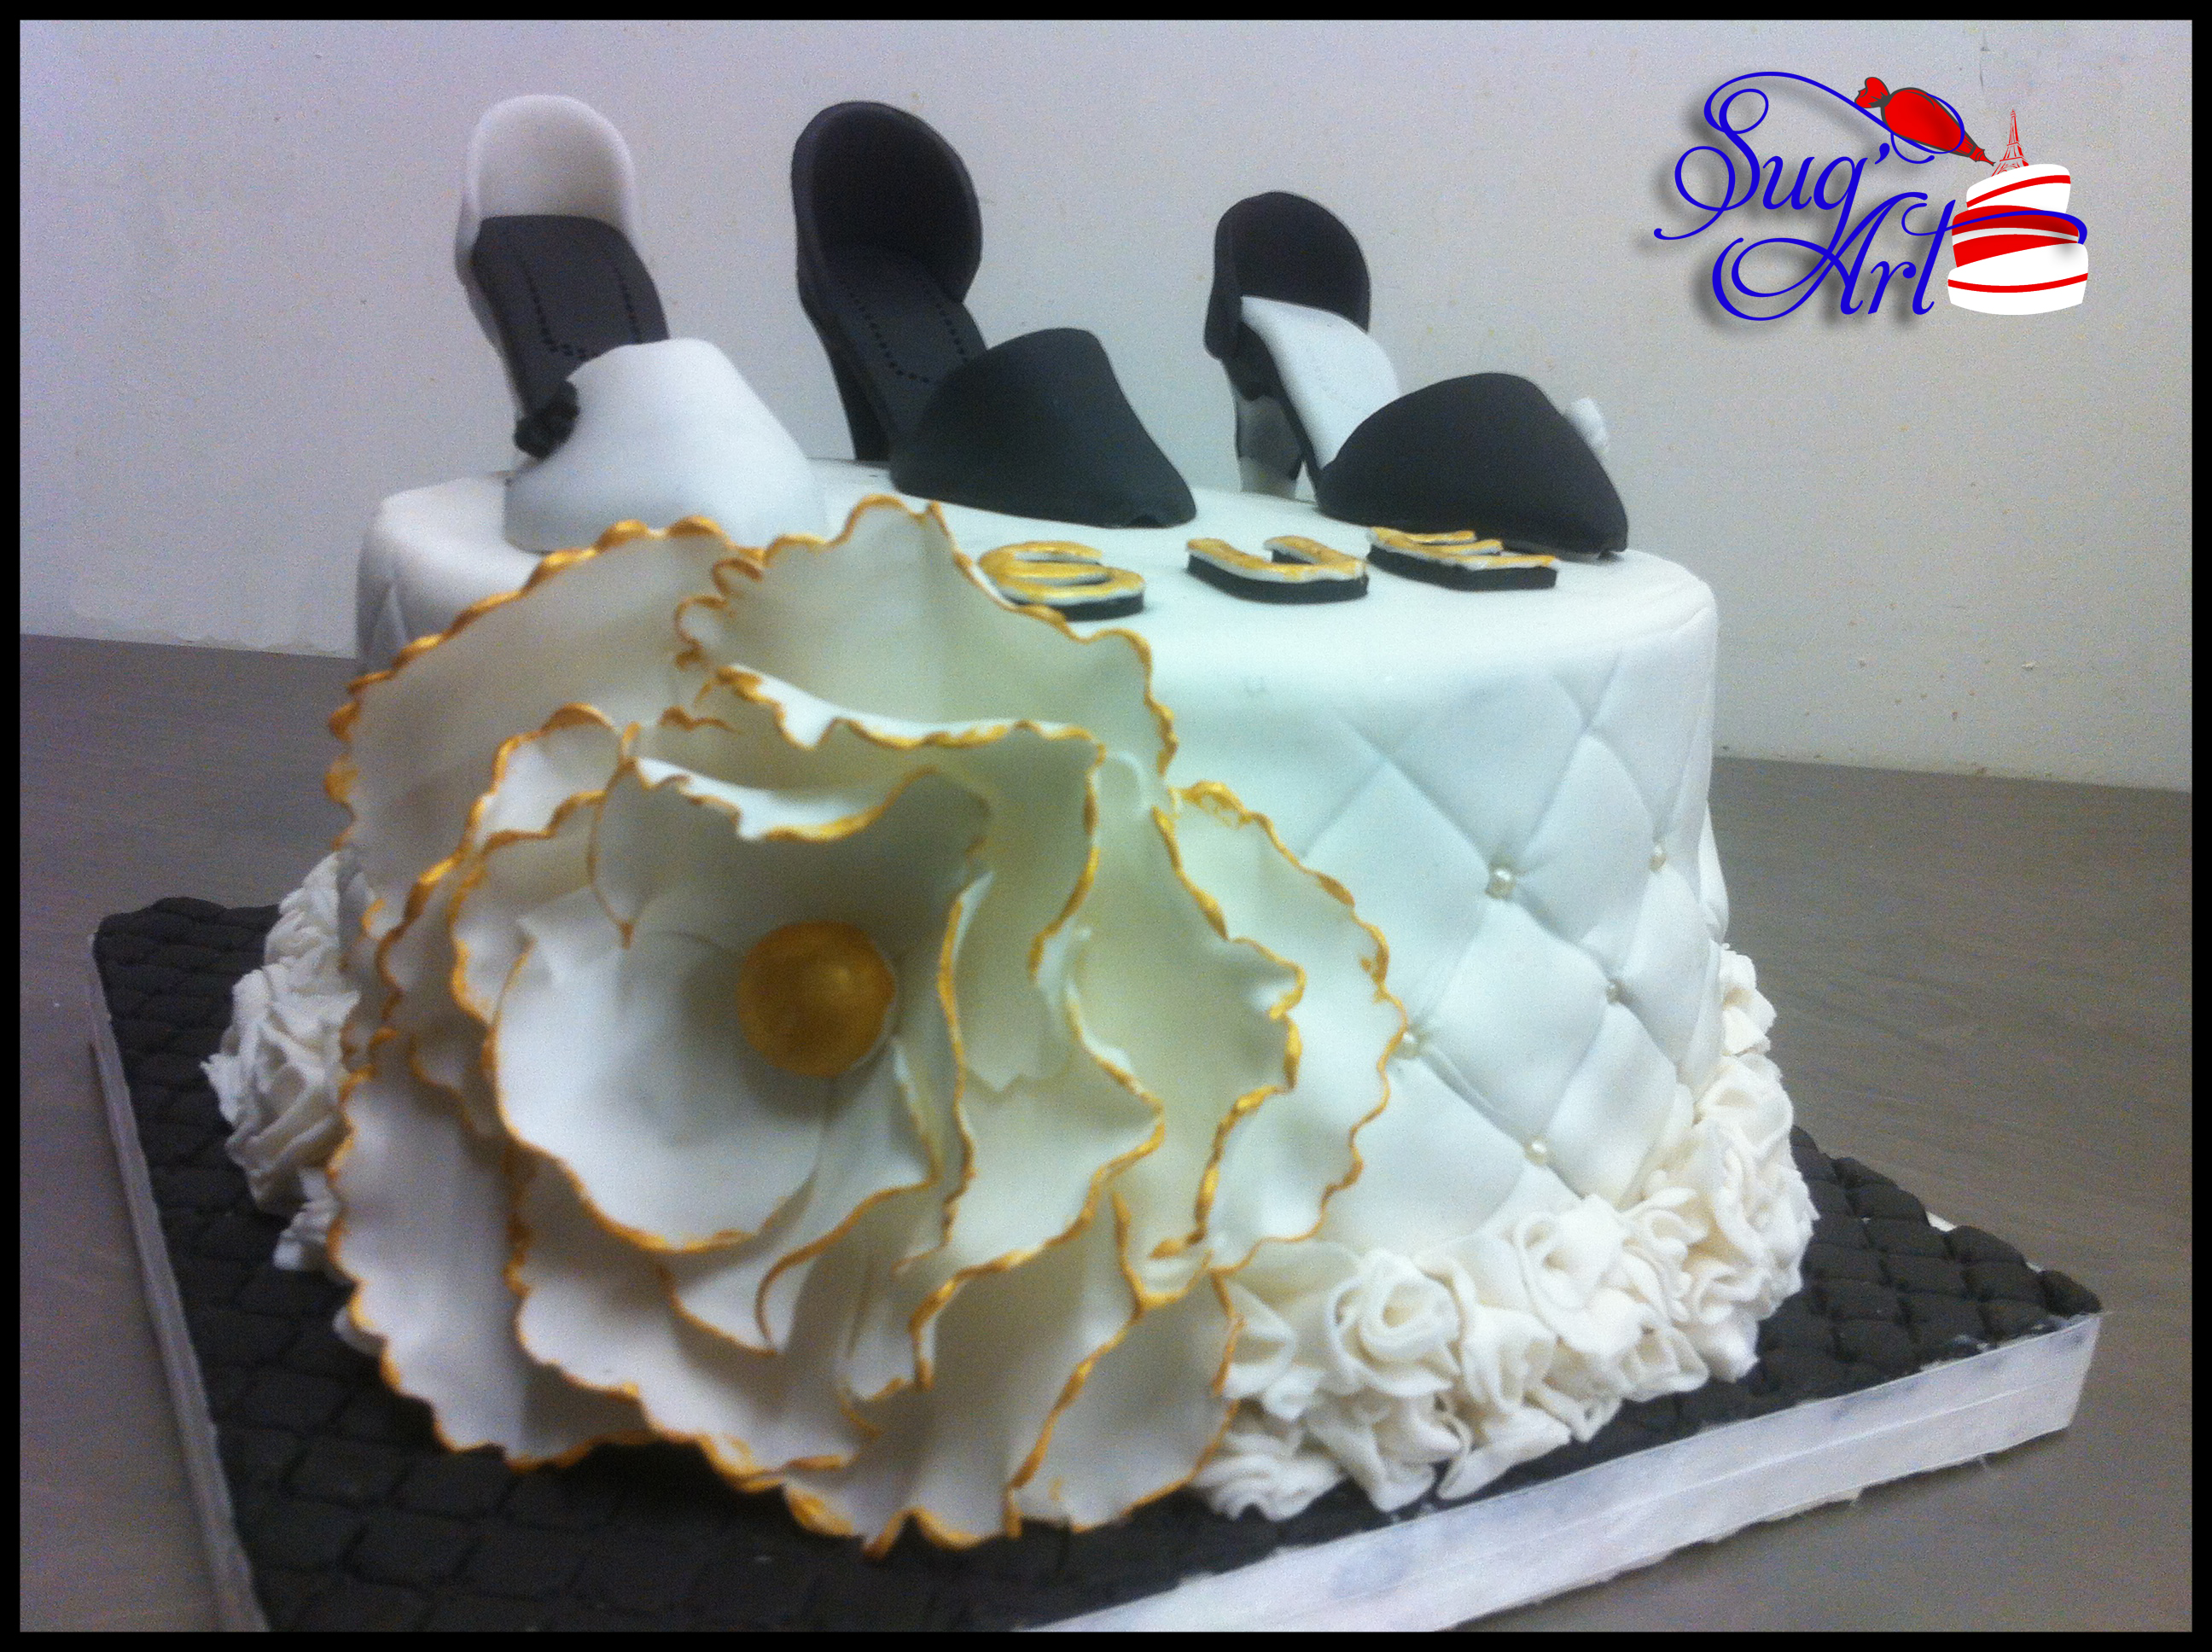 Sug Art Cake Design Montpellier : Sug Art Cake Design